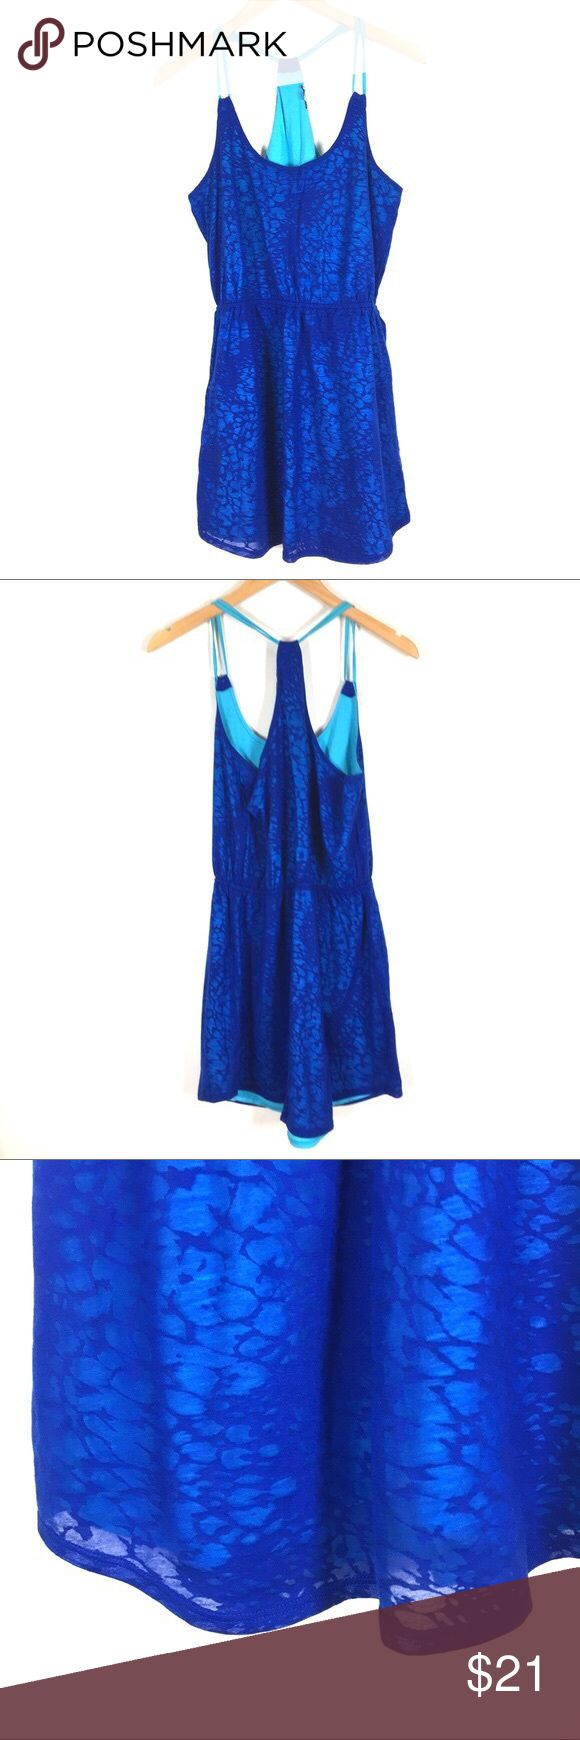 EXPRESS Dress👗 This lightweight blue burnout sundress is great for any season with an elastic waist and racer back.  1st 3 pics are stock photos, last 2 are actual item. GUC Express Dresses Mini